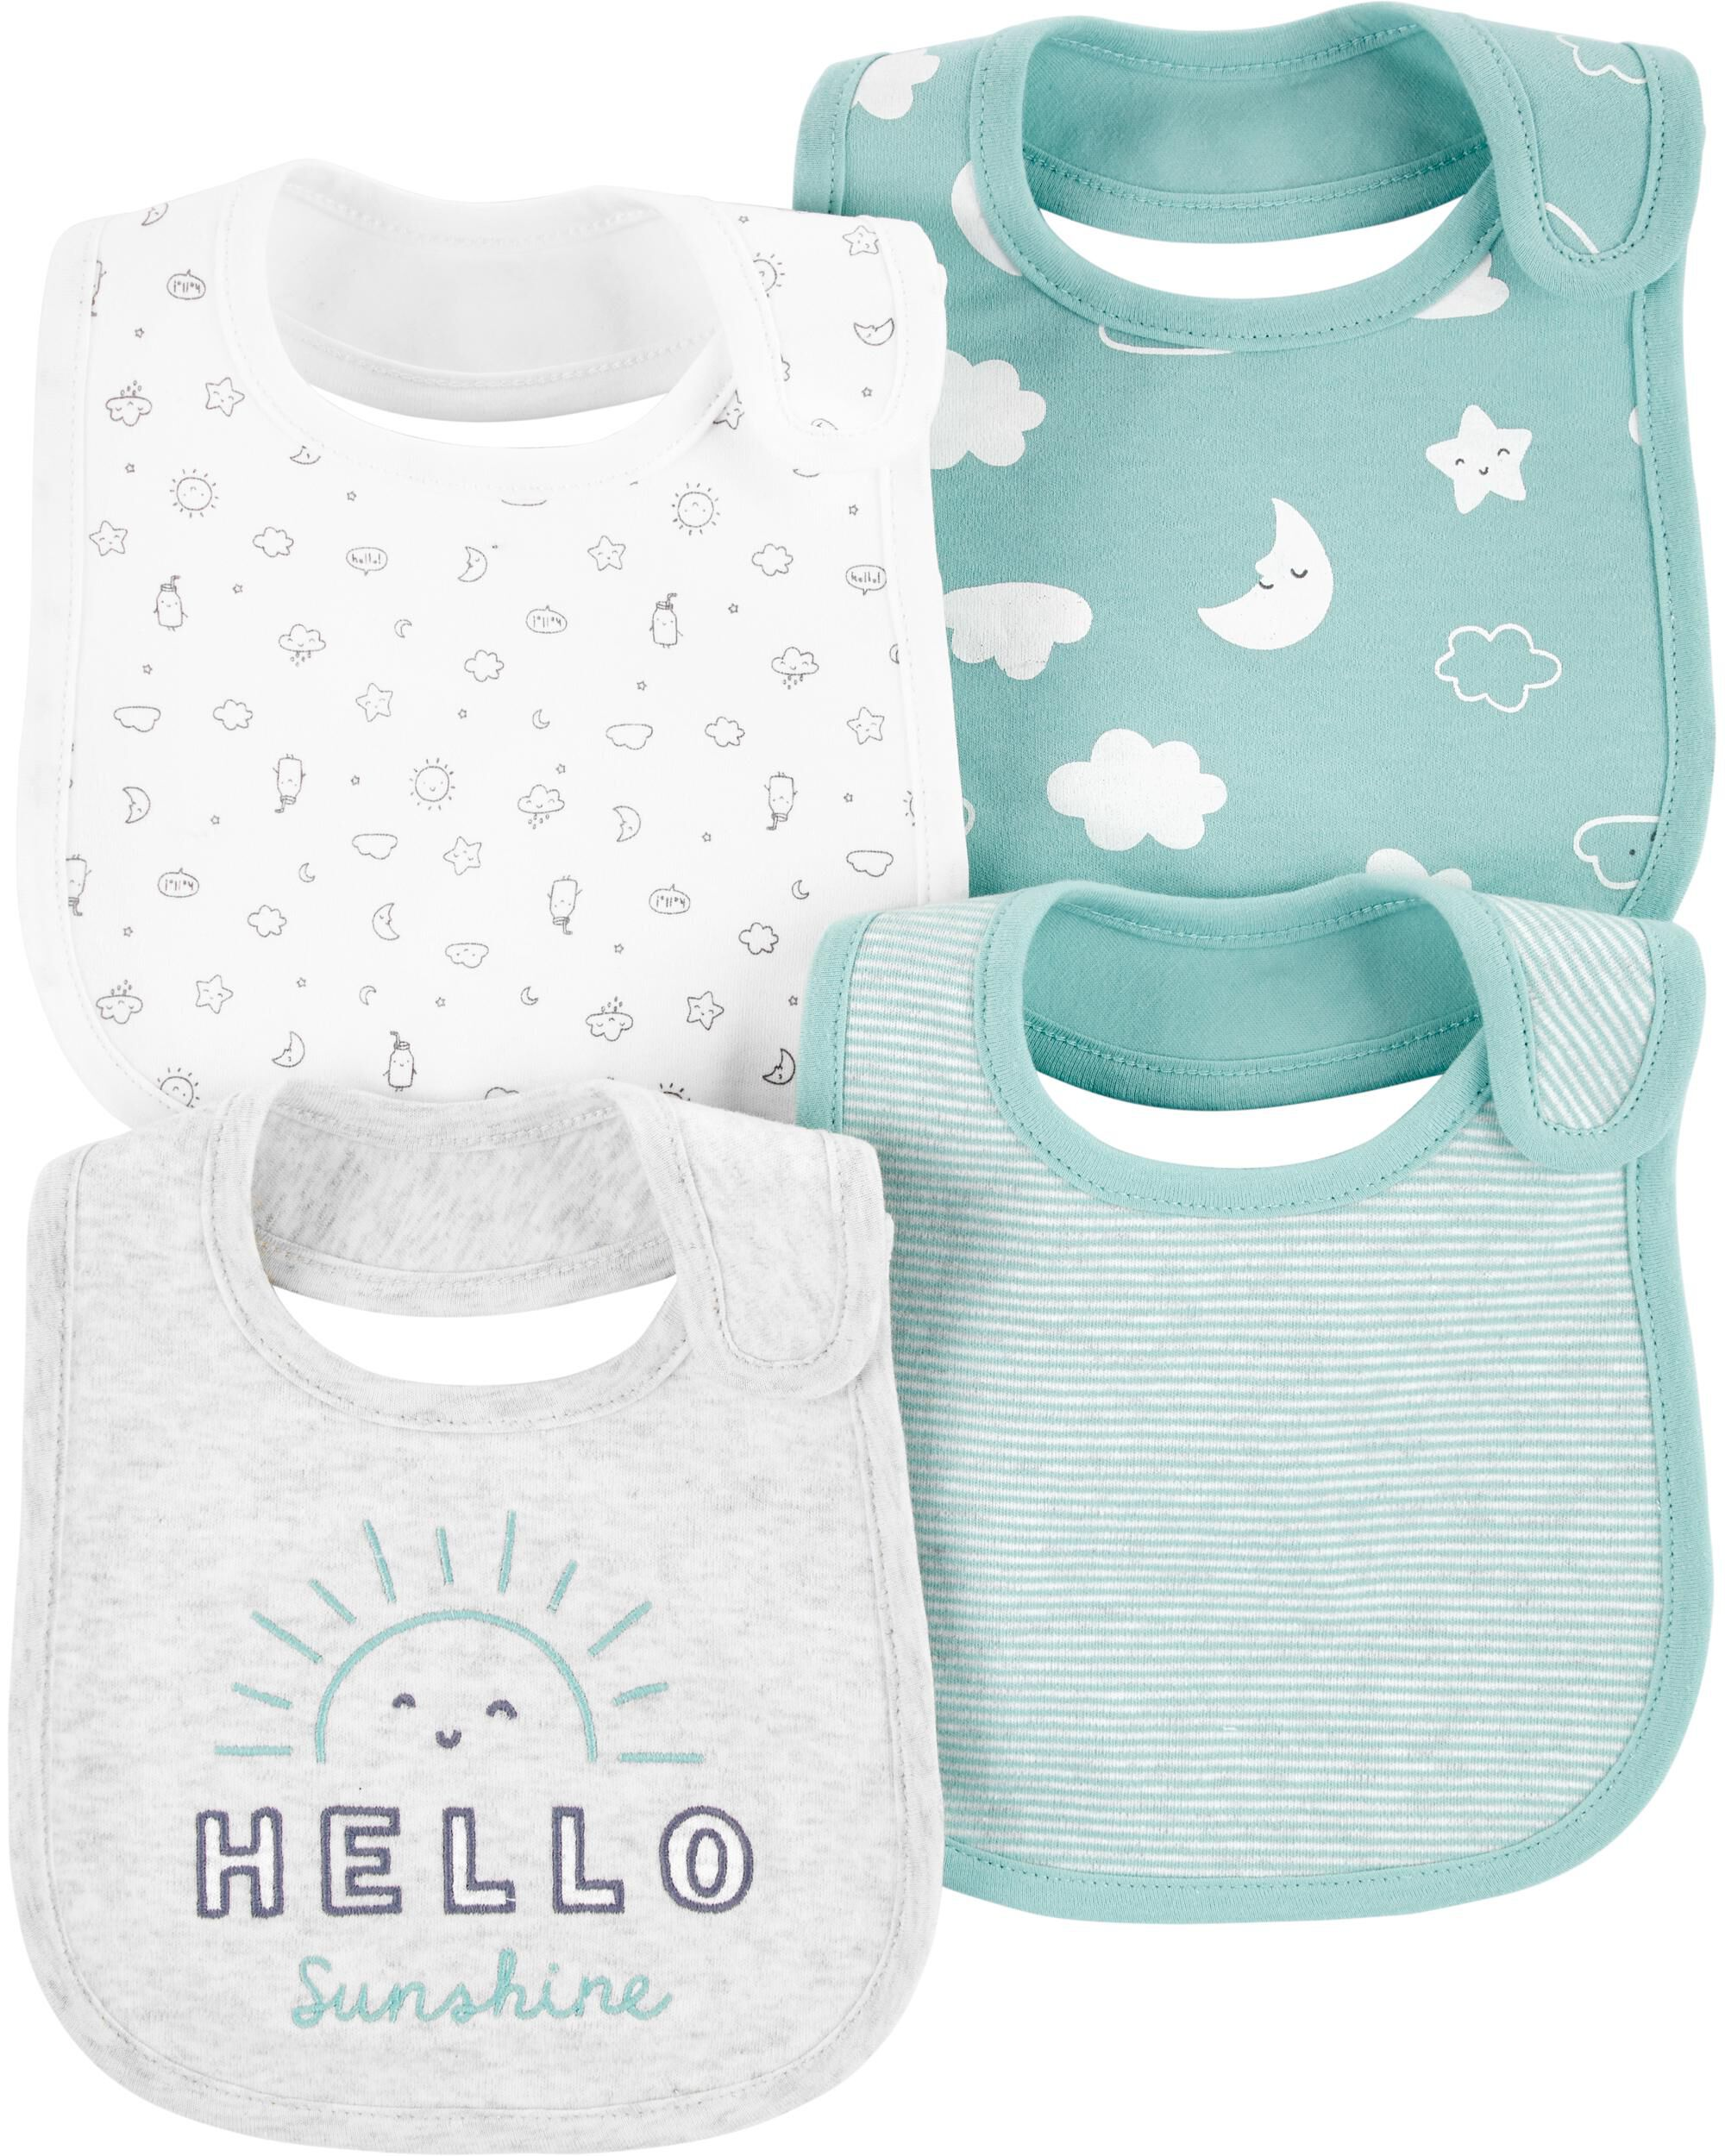 Oshkoshbgosh 4-Pack Sun Teething Bibs